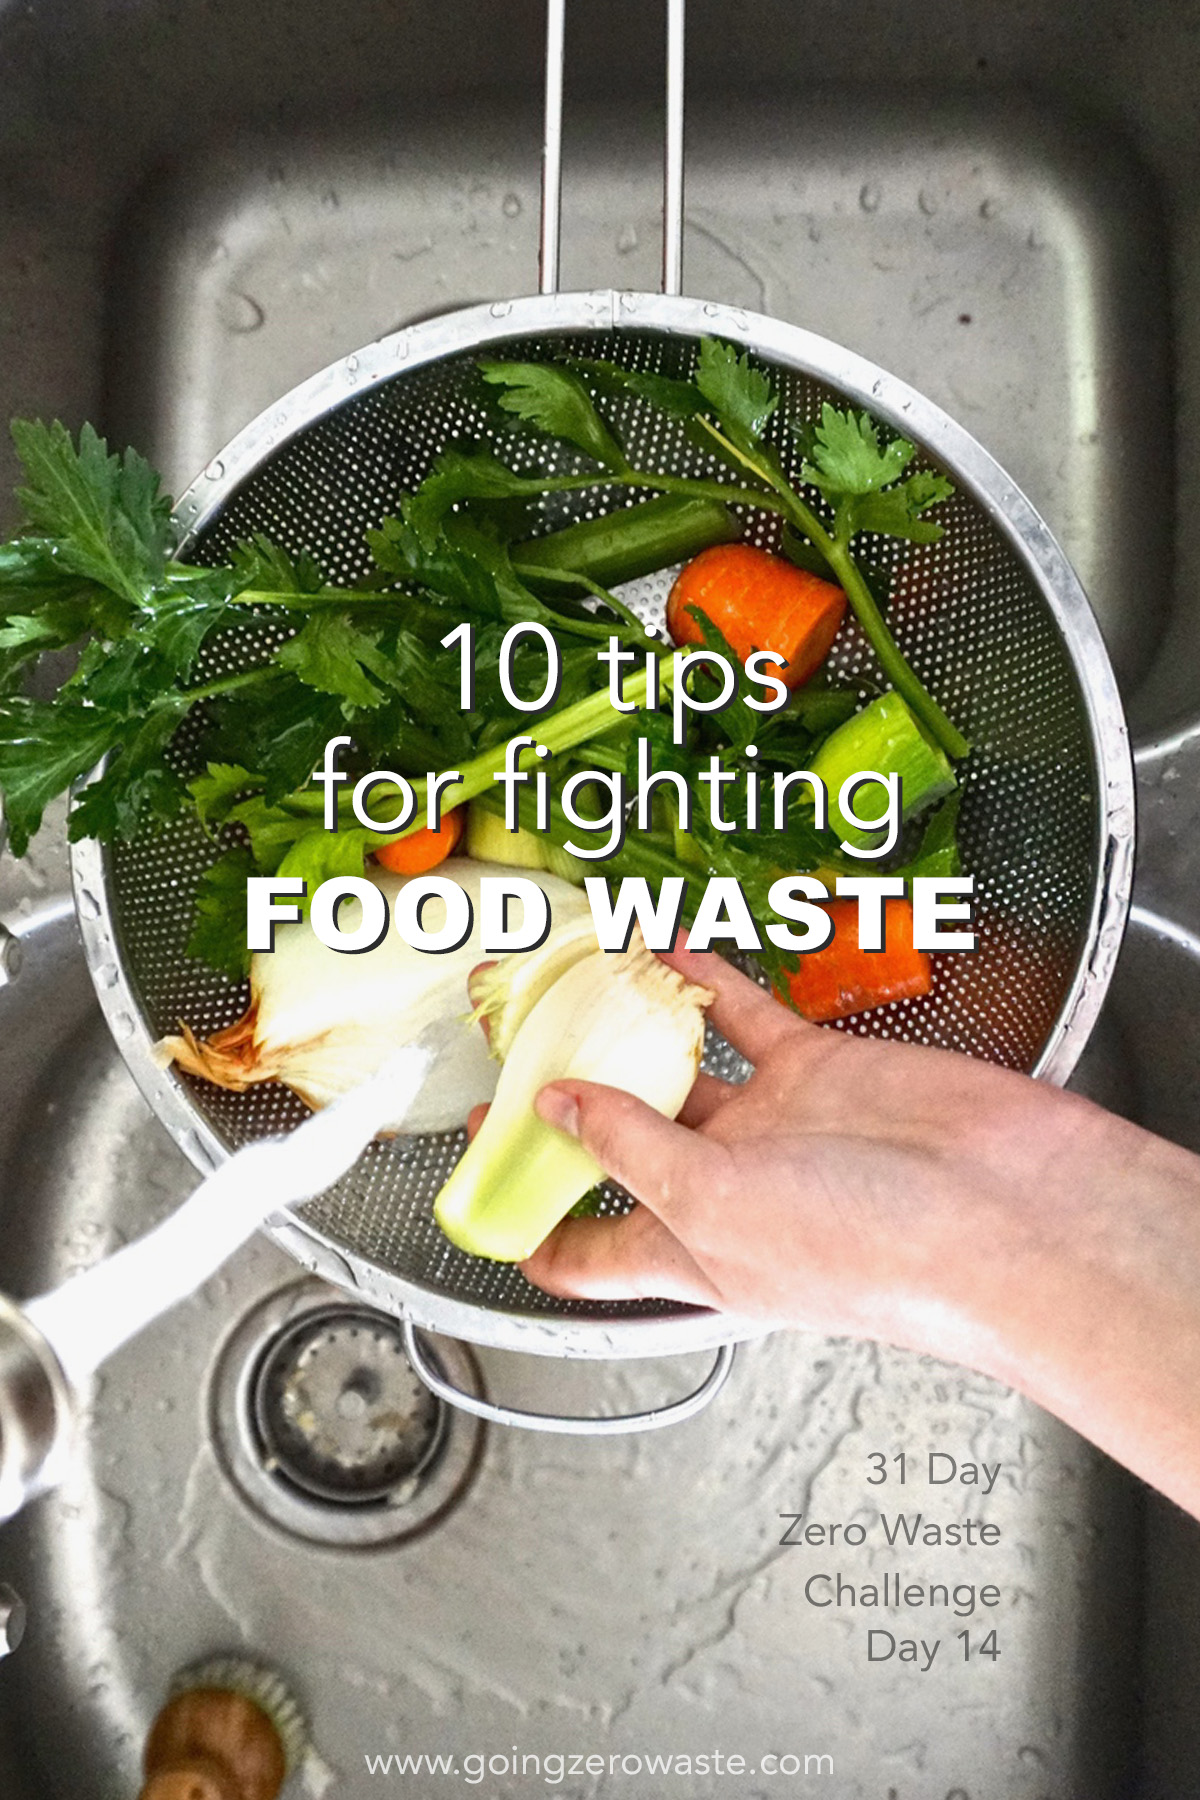 10 tips for fighting food waste from www.goingzerowaste.com day 14 of the zero waste challenge #ecofriendly #foodwaste #zerowaste #zerowastechallenge